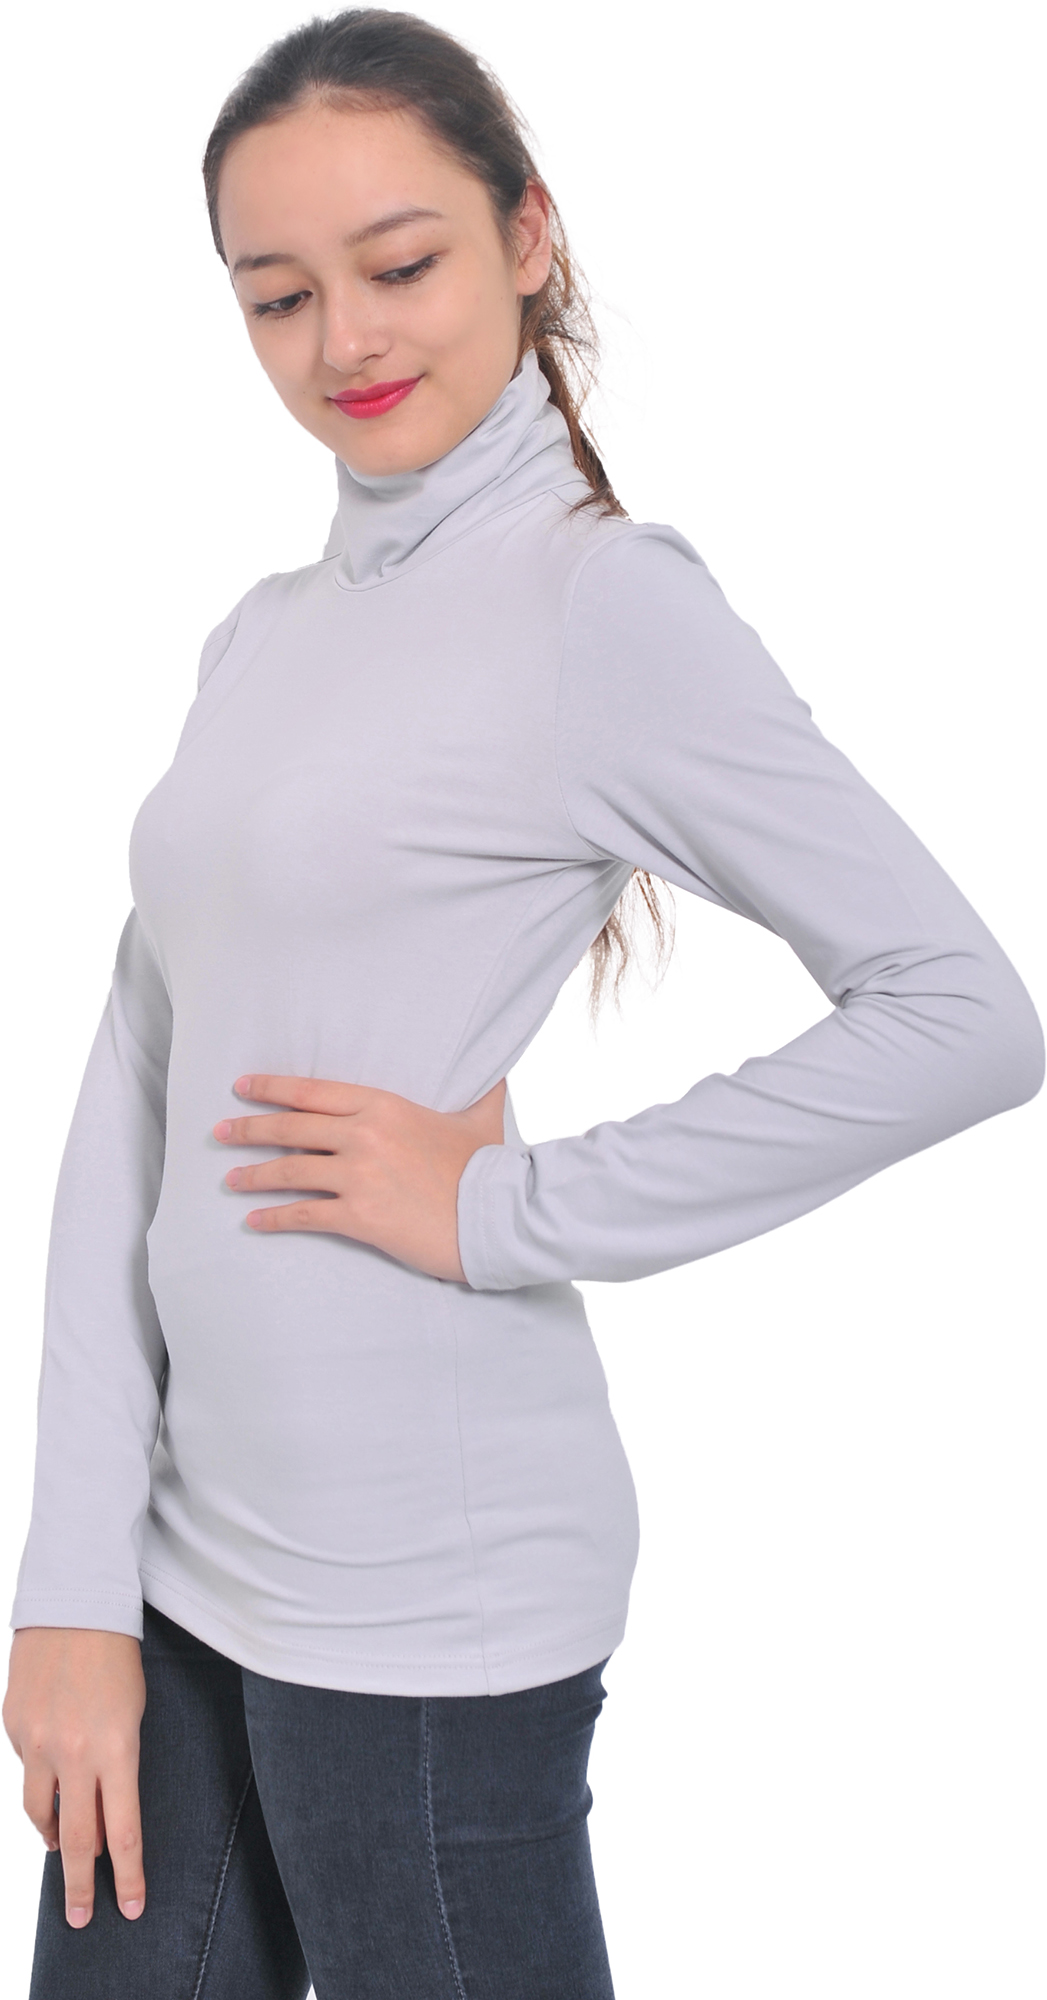 Every Woman's Wardrobe Can Benefit From One of These Best-Selling Turtlenecks We all need a good turtleneck in our wardrobe. A lightweight turtleneck is the ultimate layering staple; perfect for the days when you find yourself questioning how much you'll need to bundle up to brave the cold.